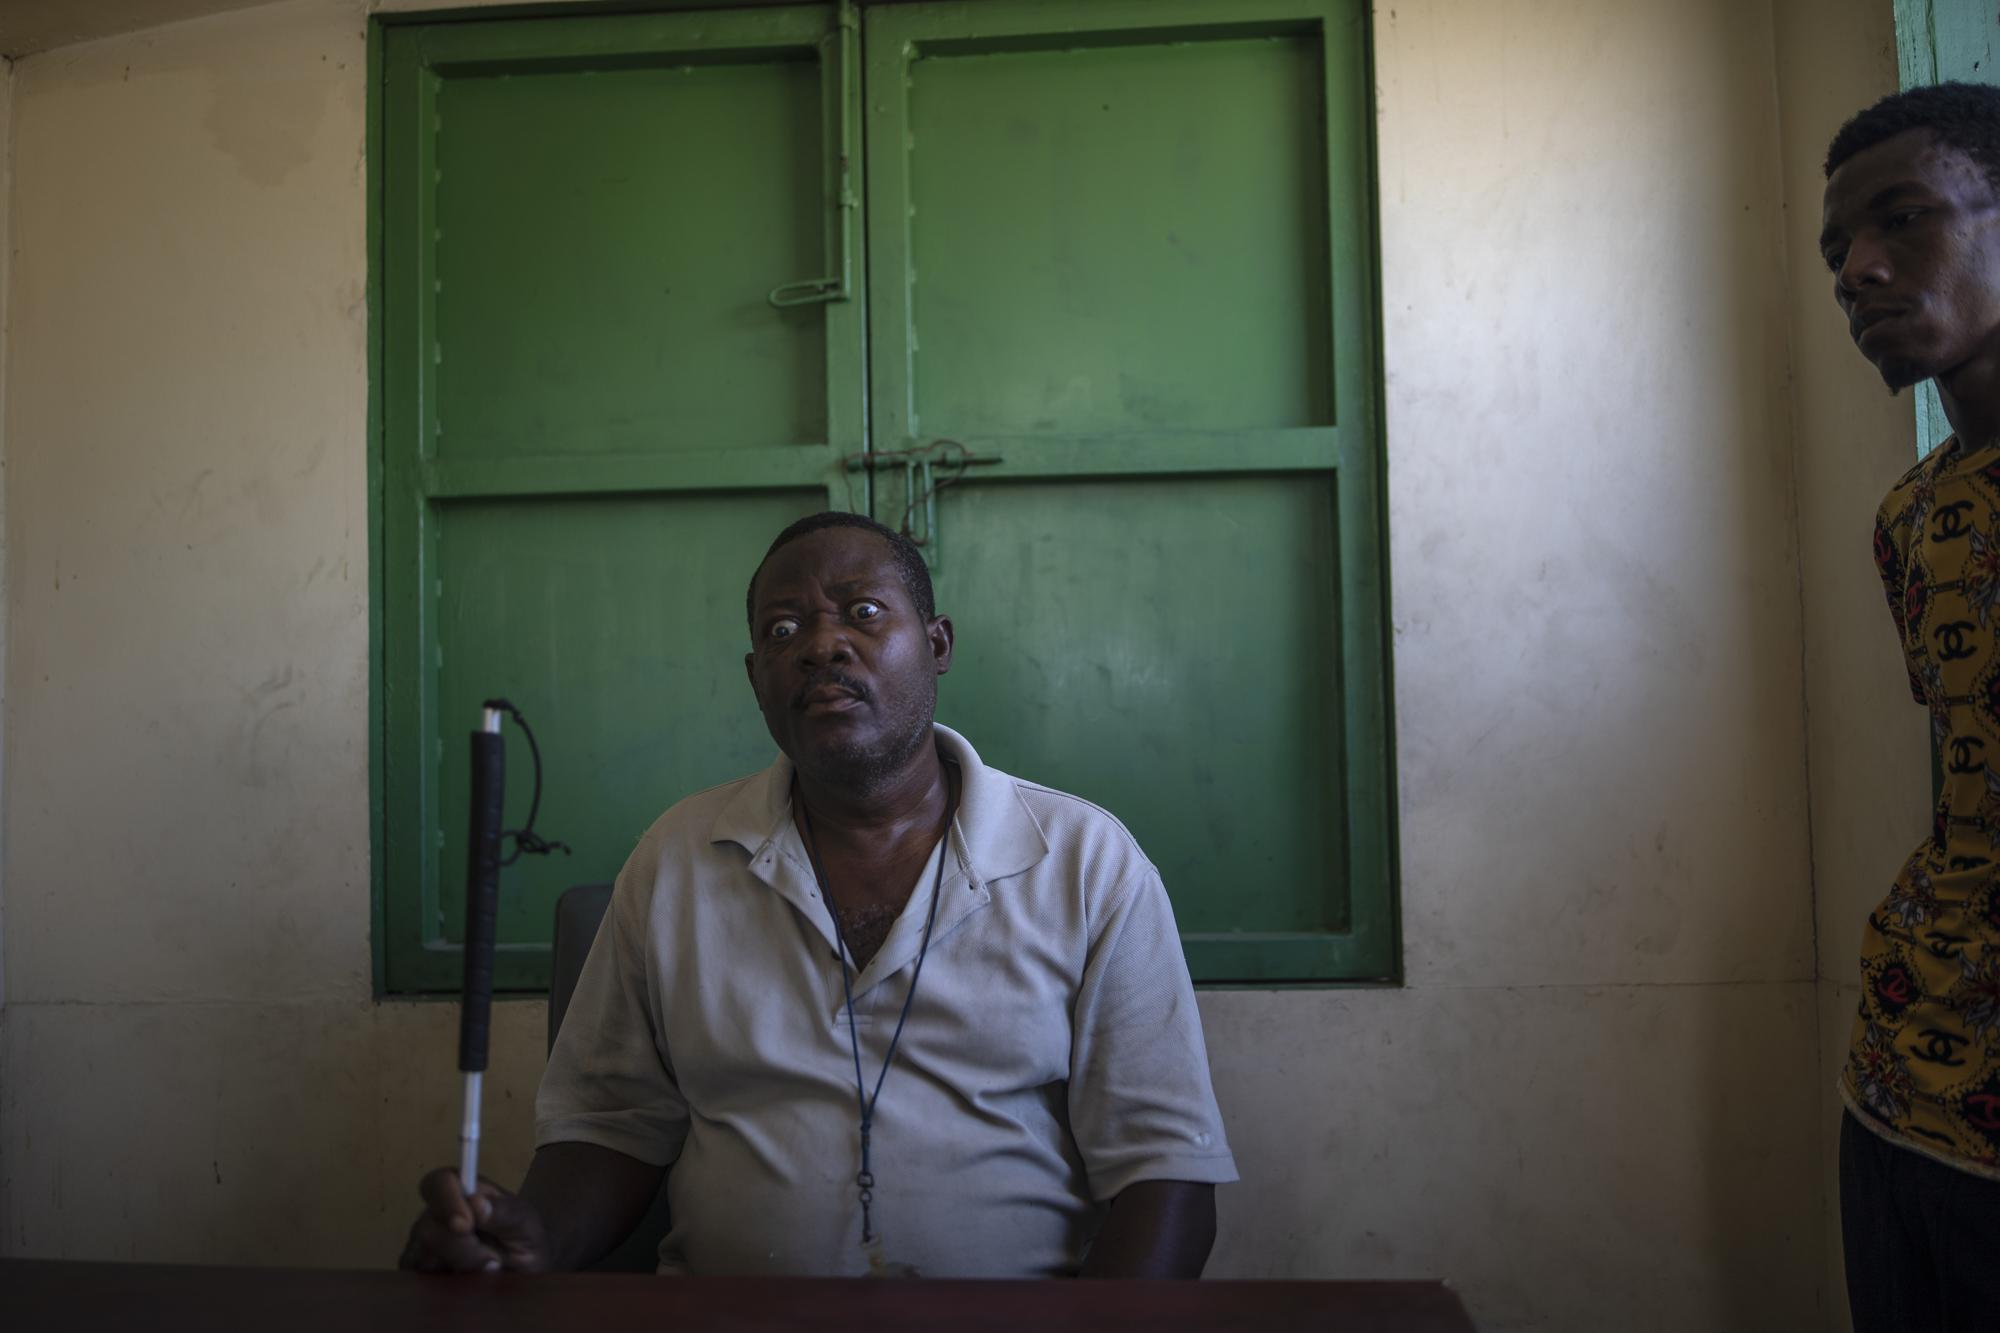 """Leader La Piste's displaced residents, Joseph Dieu Faite, who is visually impaired, recalls the assault lead by police in June, at a shelter for the internally displaced in Port-au-Prince, Haiti, Friday, Sept. 17, 2021. """"There were some gangsters there, I have to acknowledge that, but the police did not ask, did not say a word, did not make a difference, just evicted us and then took matches and gasoline and burned our houses one by one,"""" Faite said. (AP Photo/Rodrigo Abd)"""